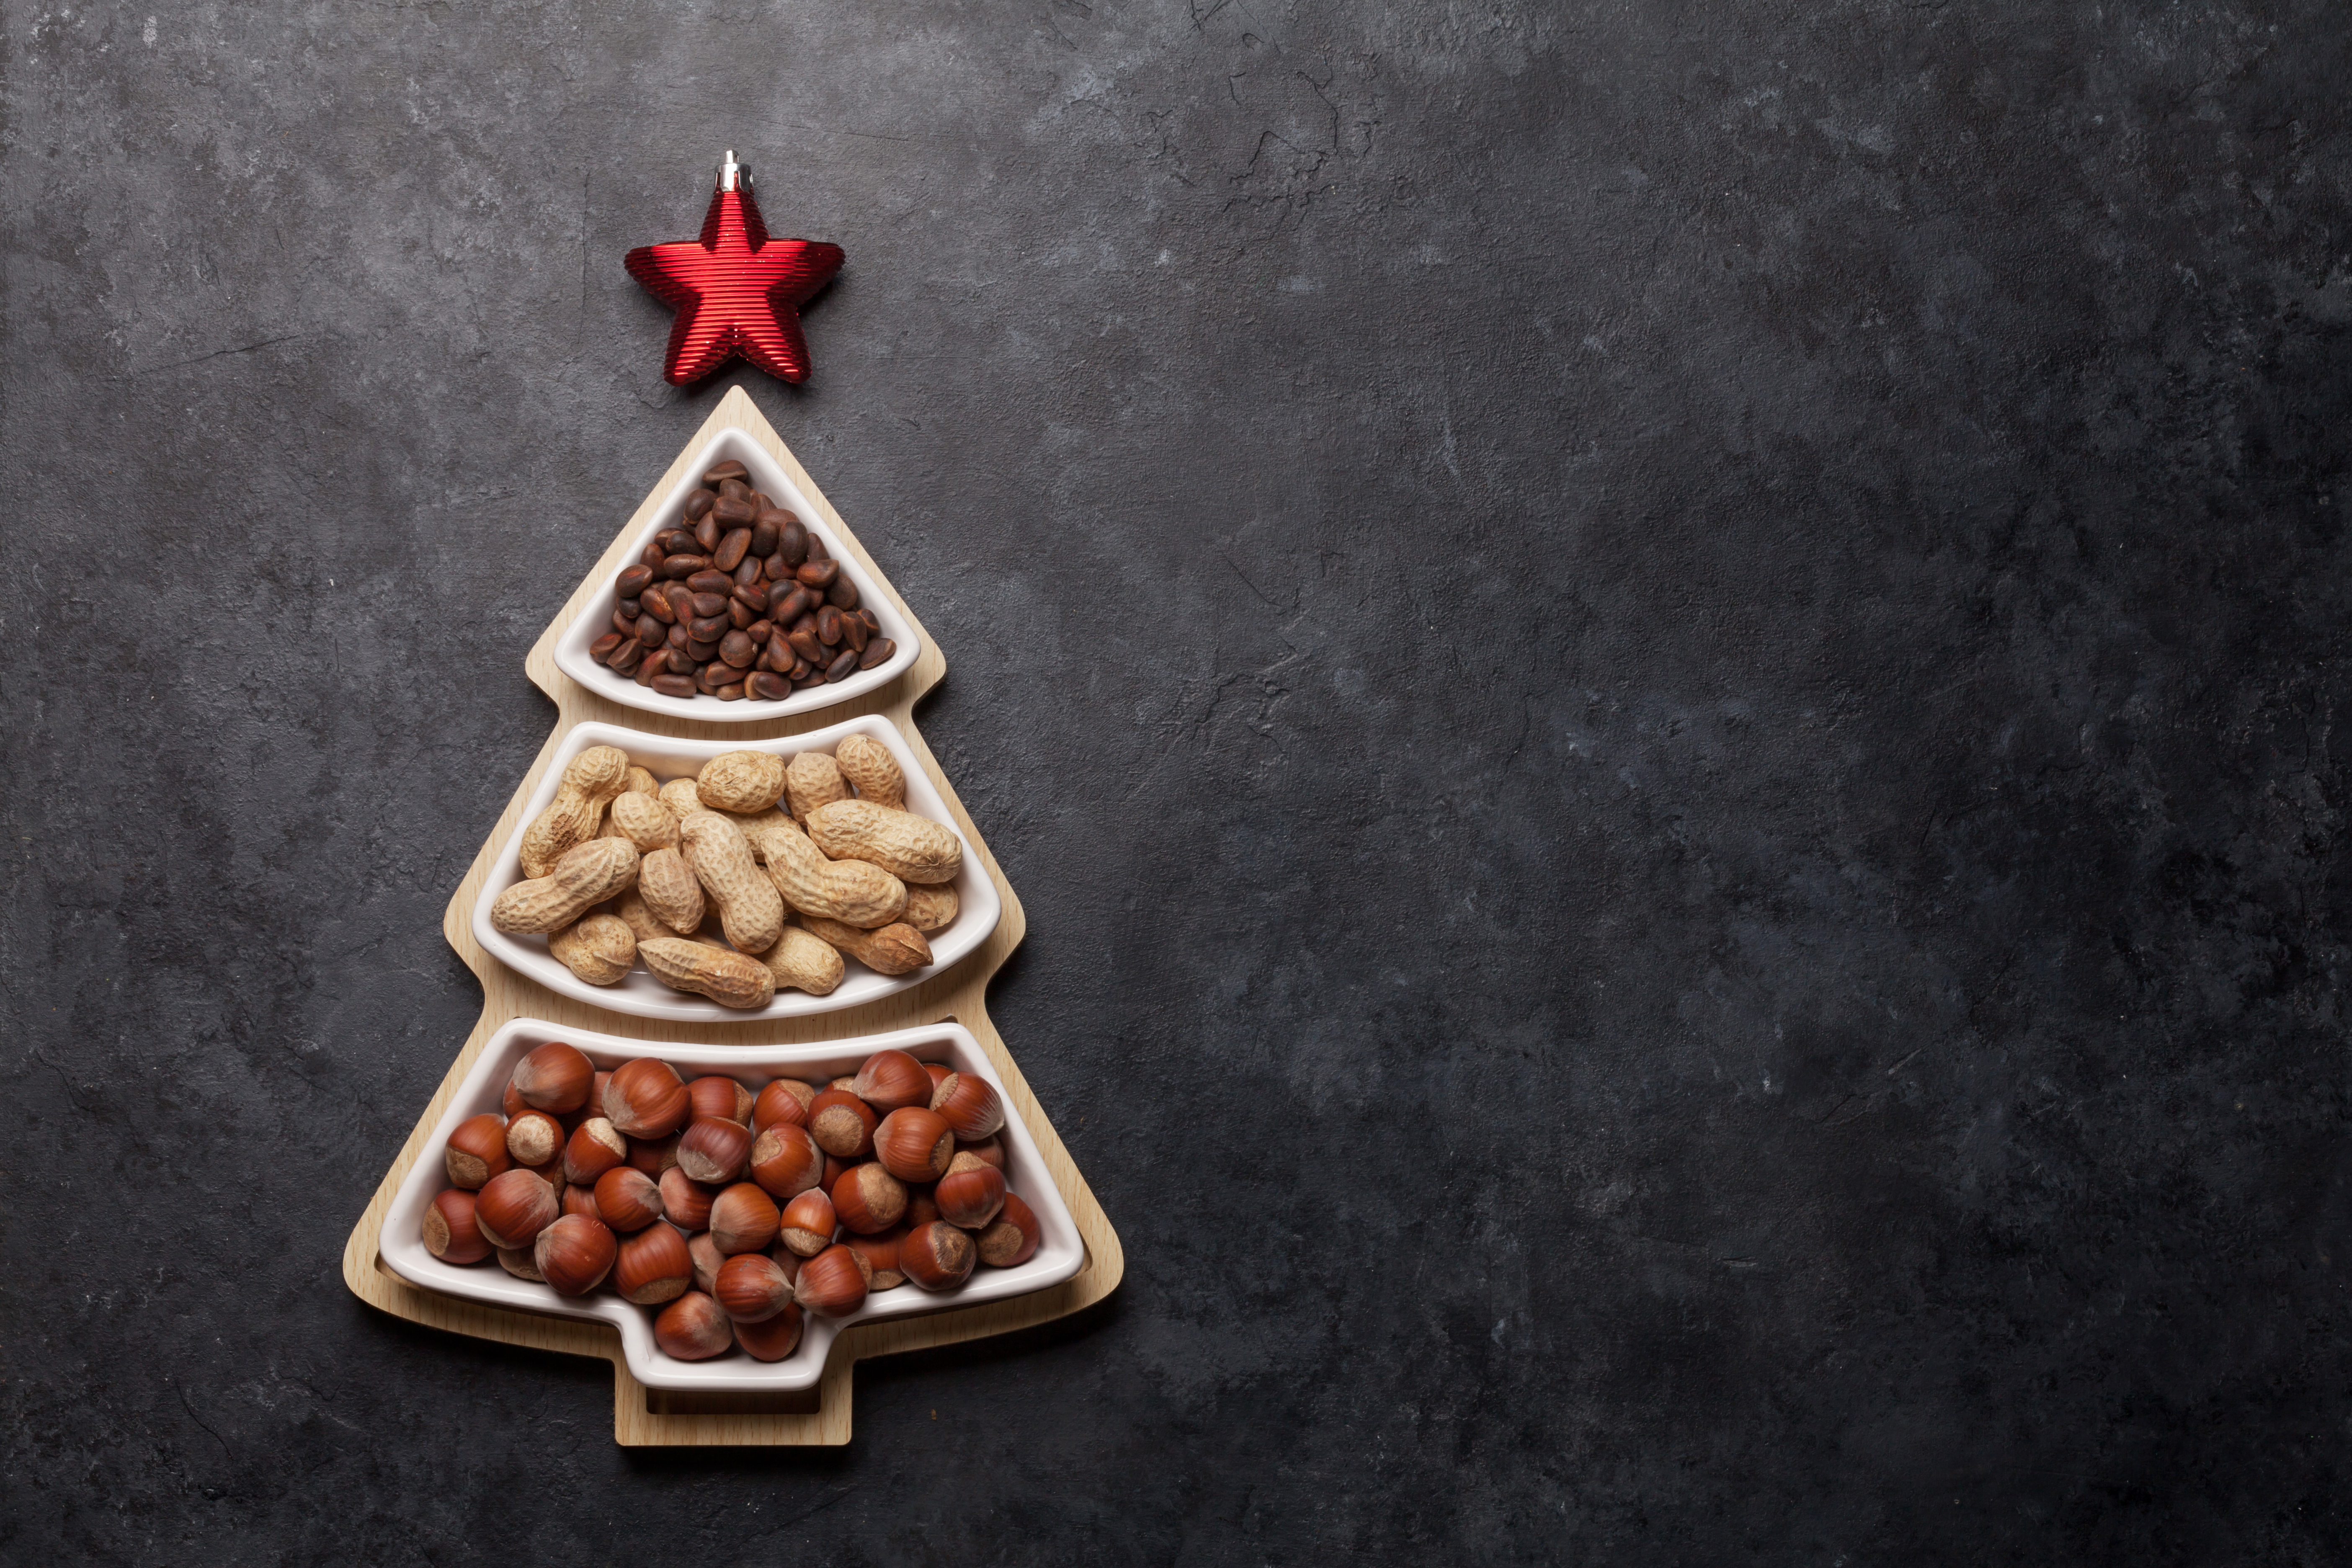 Nuts even though exotic can be highly valuable addition to christmas dinner!